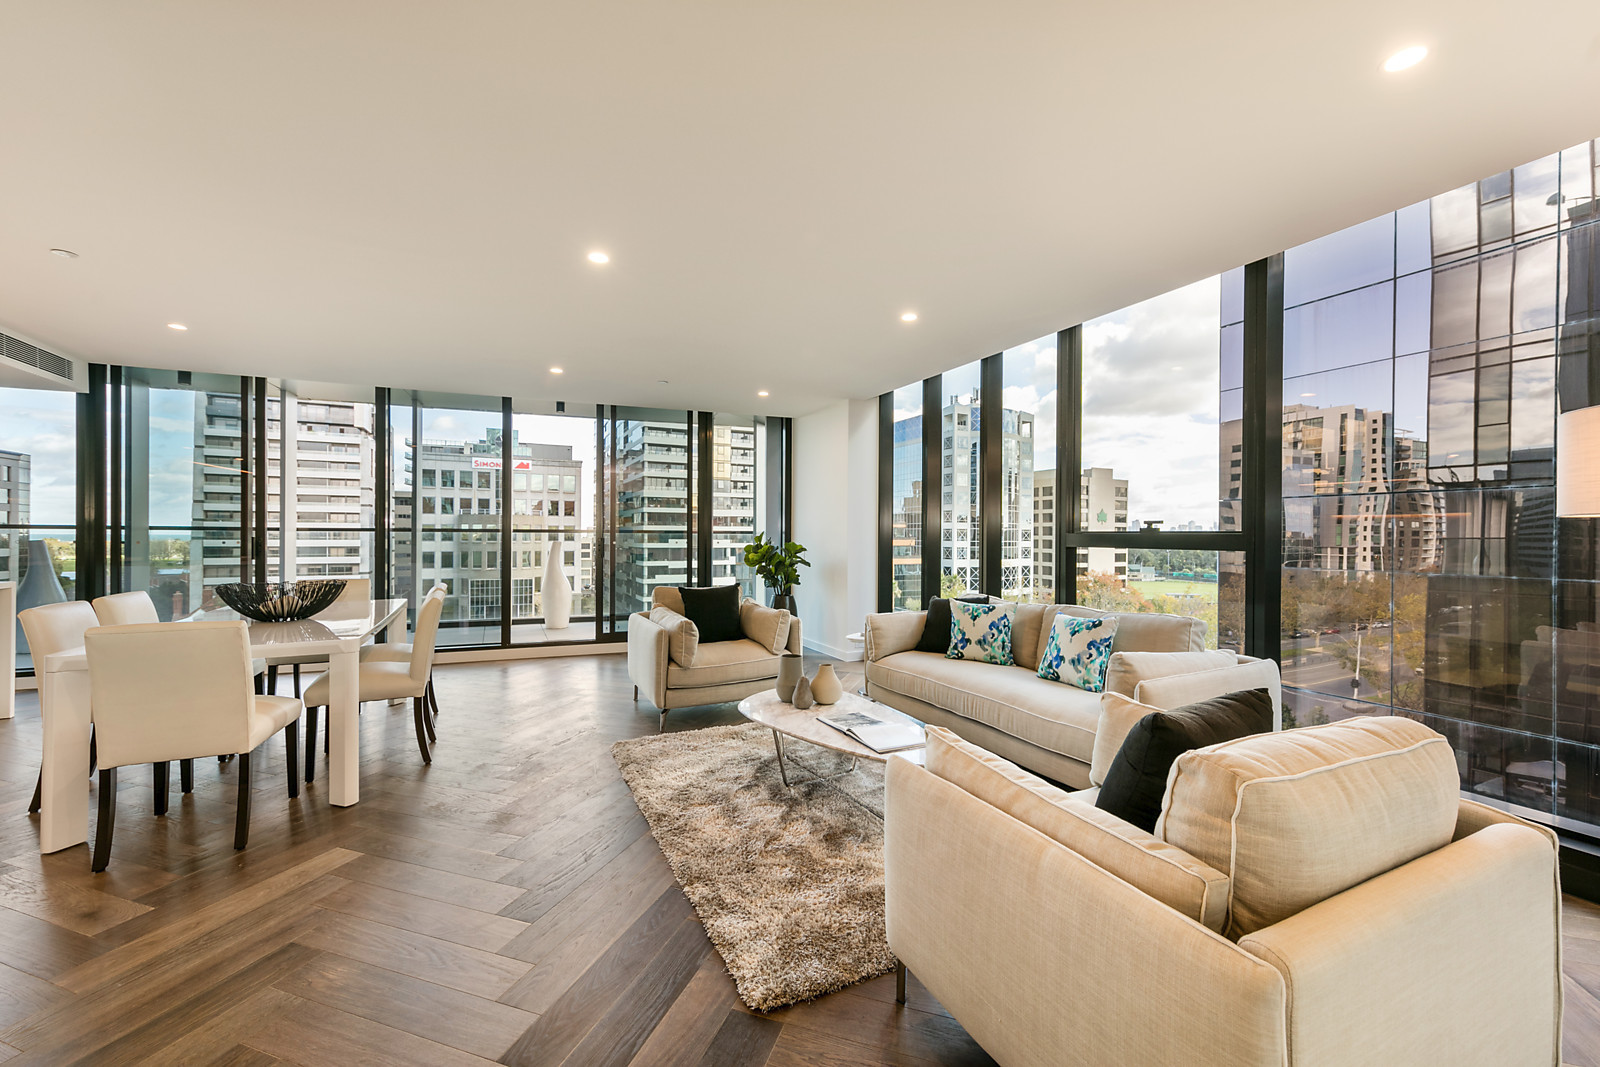 An iconic opportunity to live in one of the finest suburbs of Melbourne!